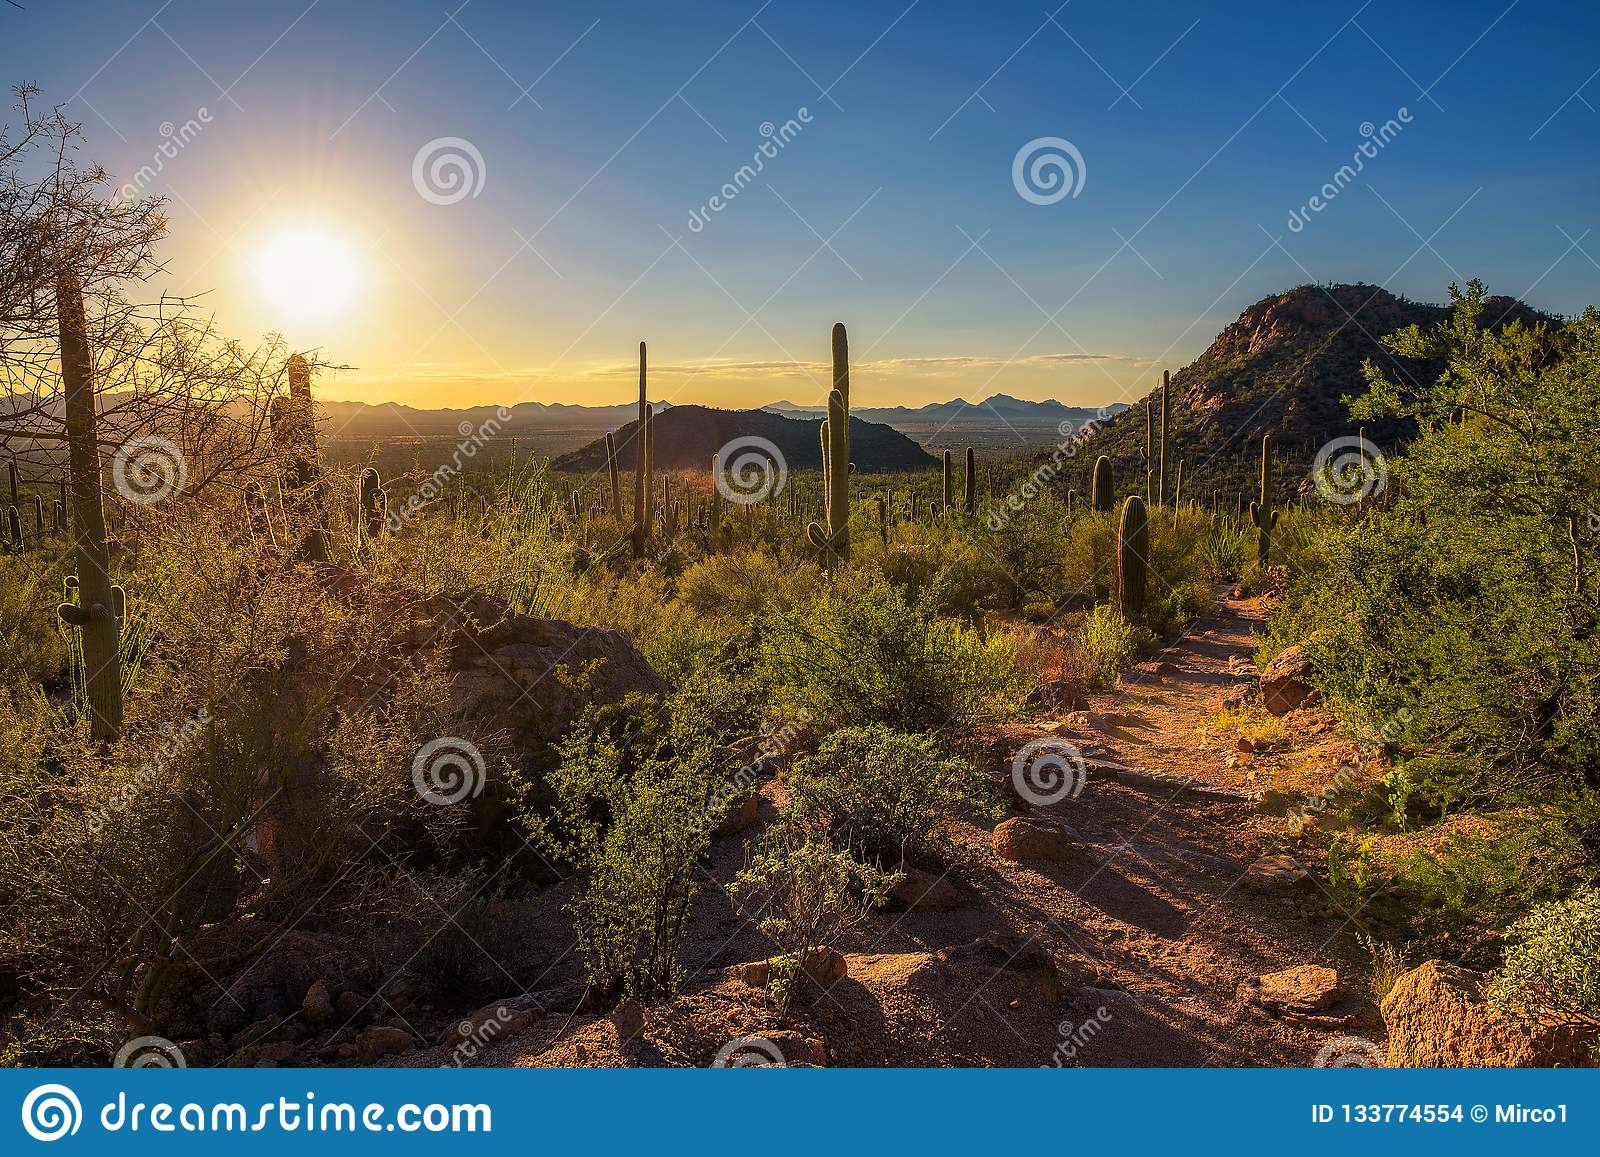 Sunset over hiking trail in Saguaro National Park in Arizona